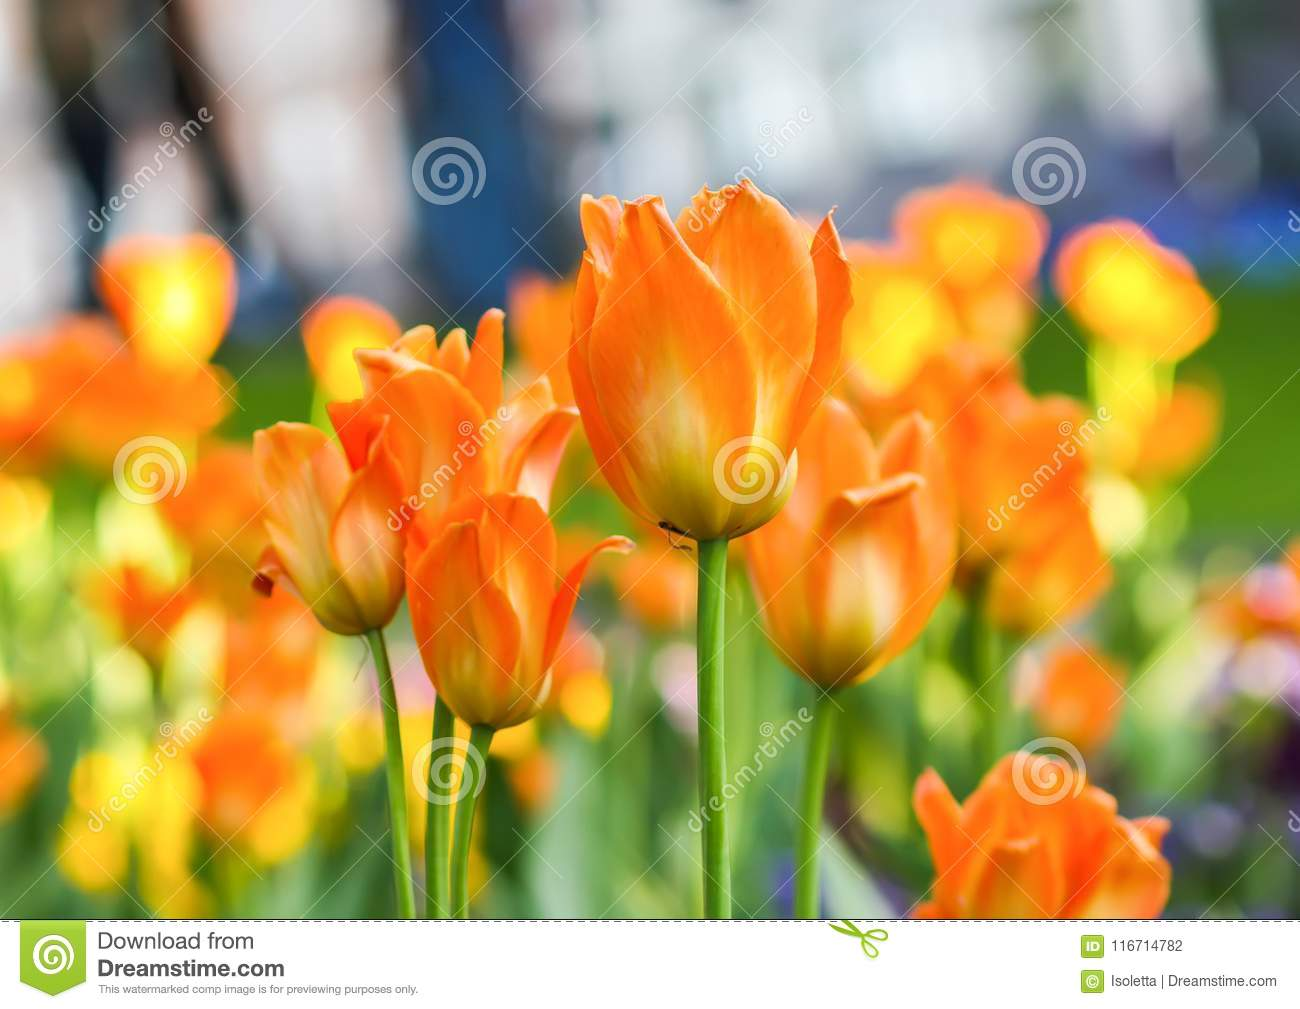 Beautiful garden flowers. Bright tulips in spring park. Urban landscape with decorative plants.